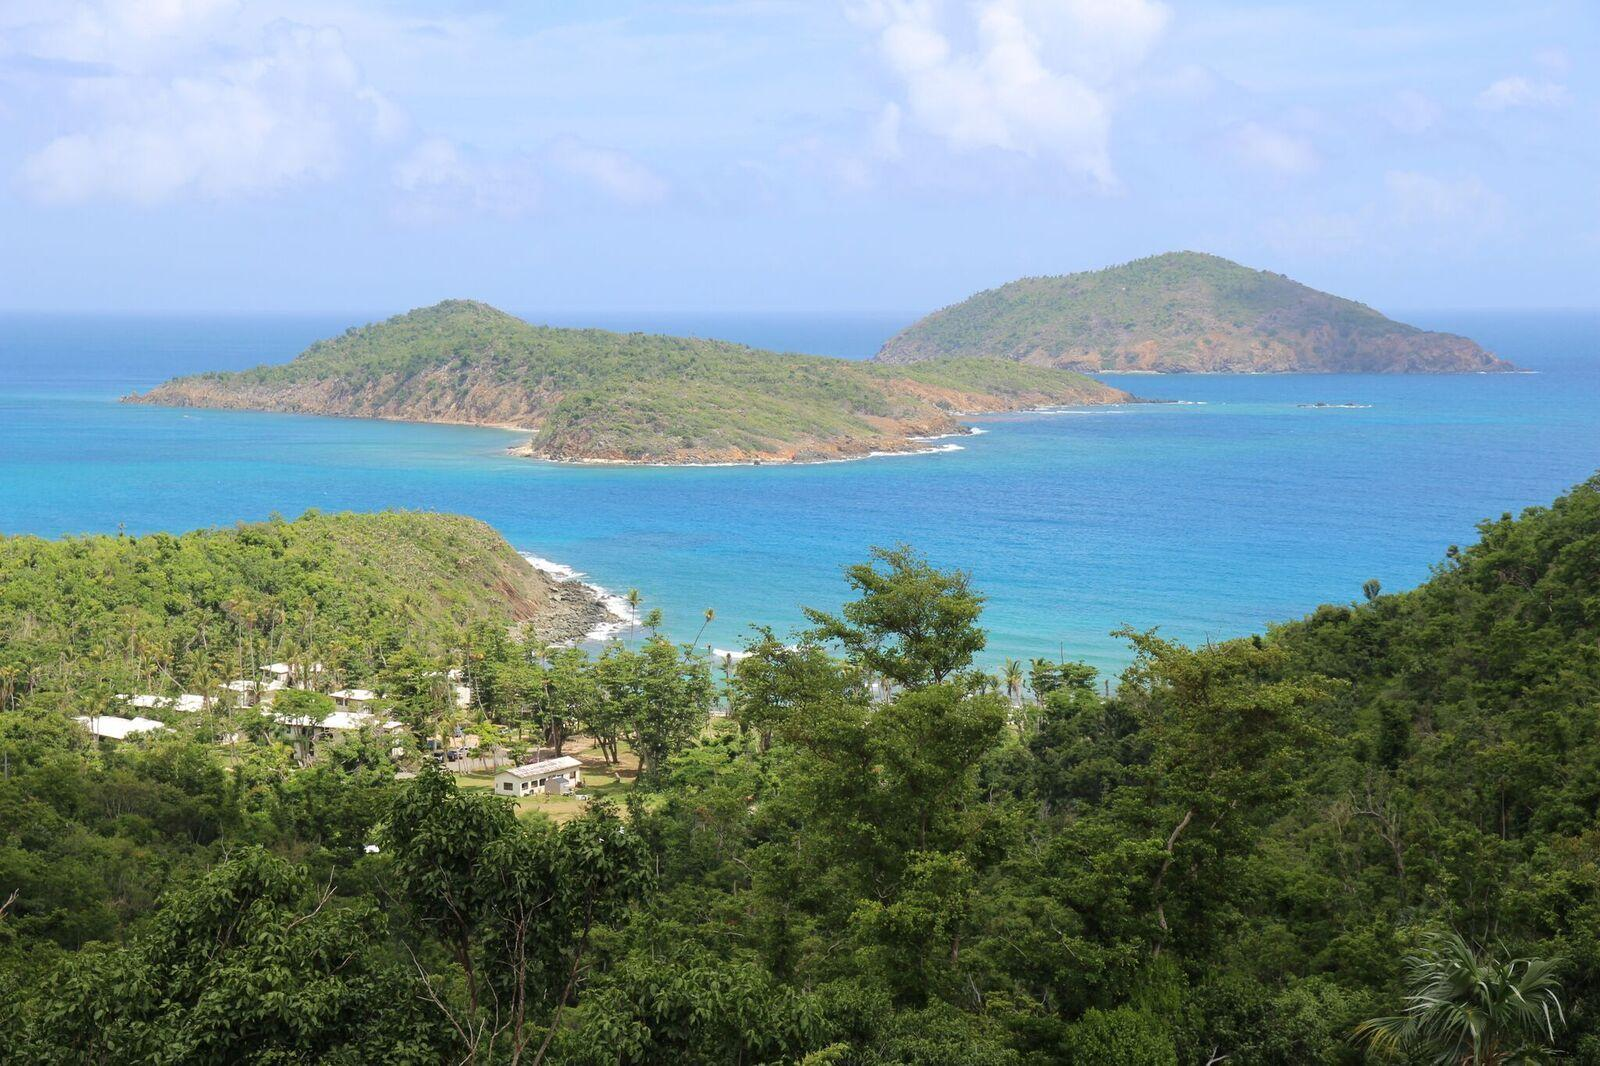 Multi-Family Home for Sale at 14-68 Bonne Resolution LNS 14-68 Bonne Resolution LNS St Thomas, Virgin Islands 00802 United States Virgin Islands